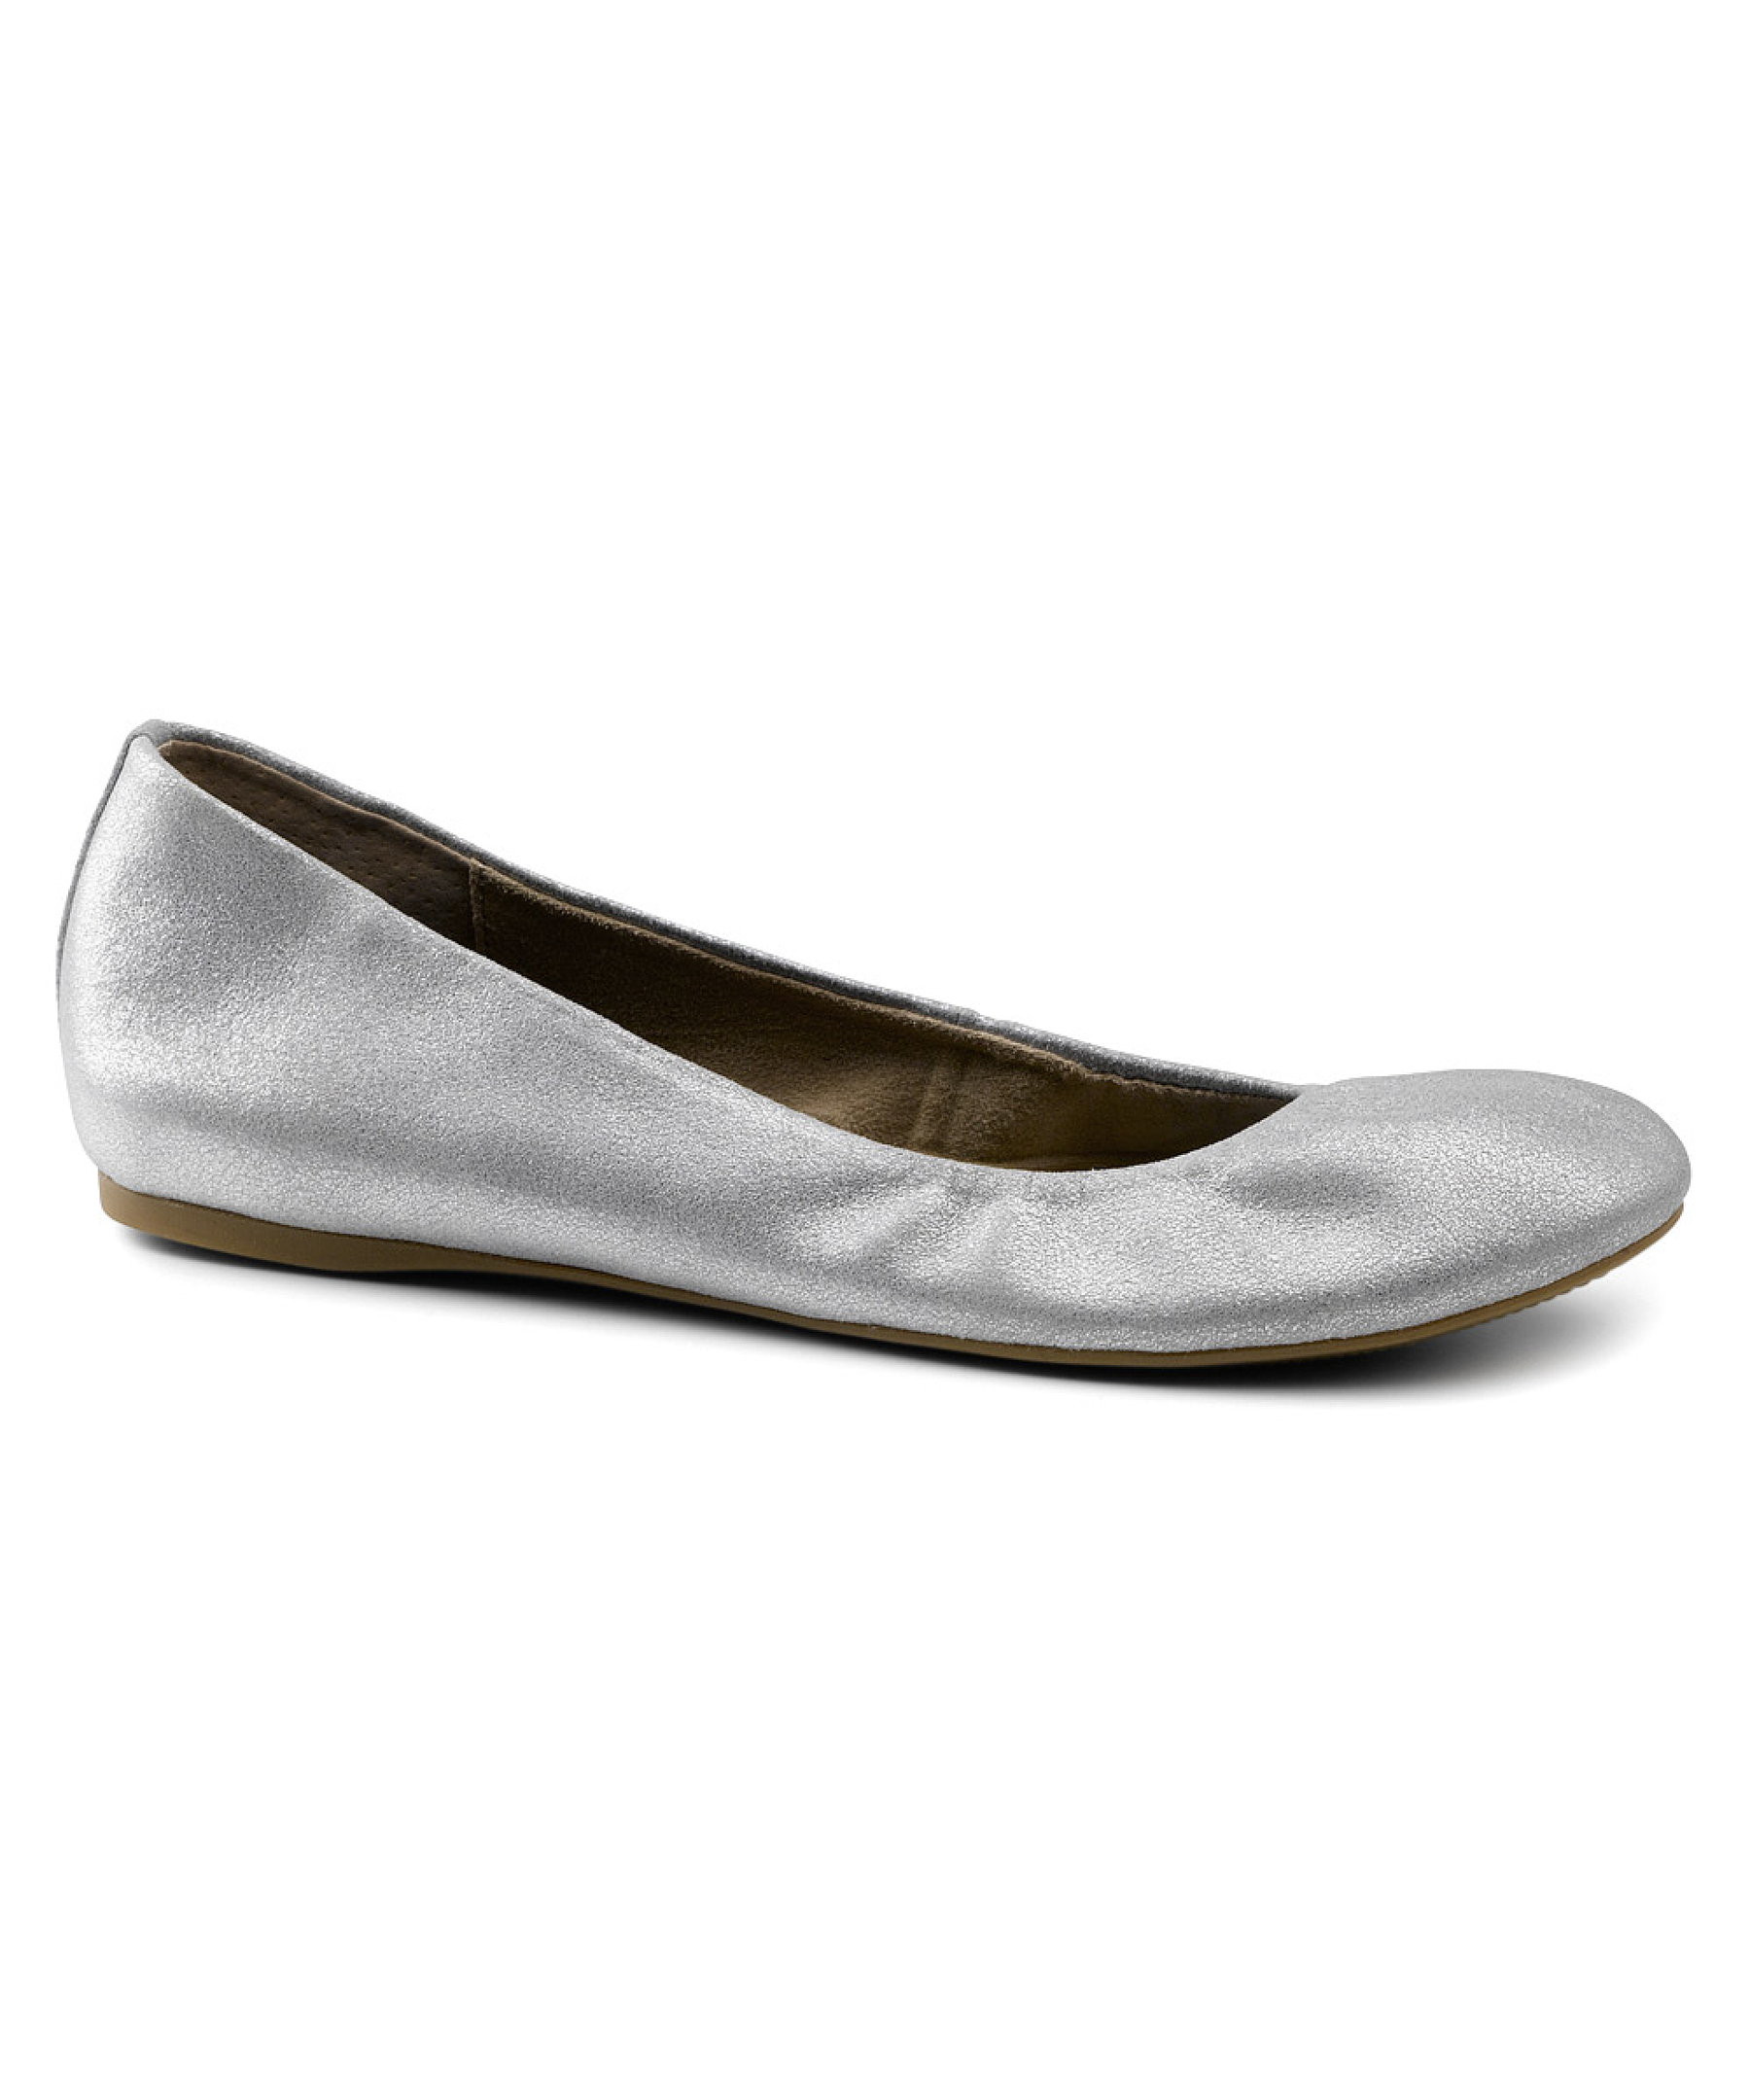 G.h. bass & co. Women's Felicity Flats Shoes in Silver | Lyst